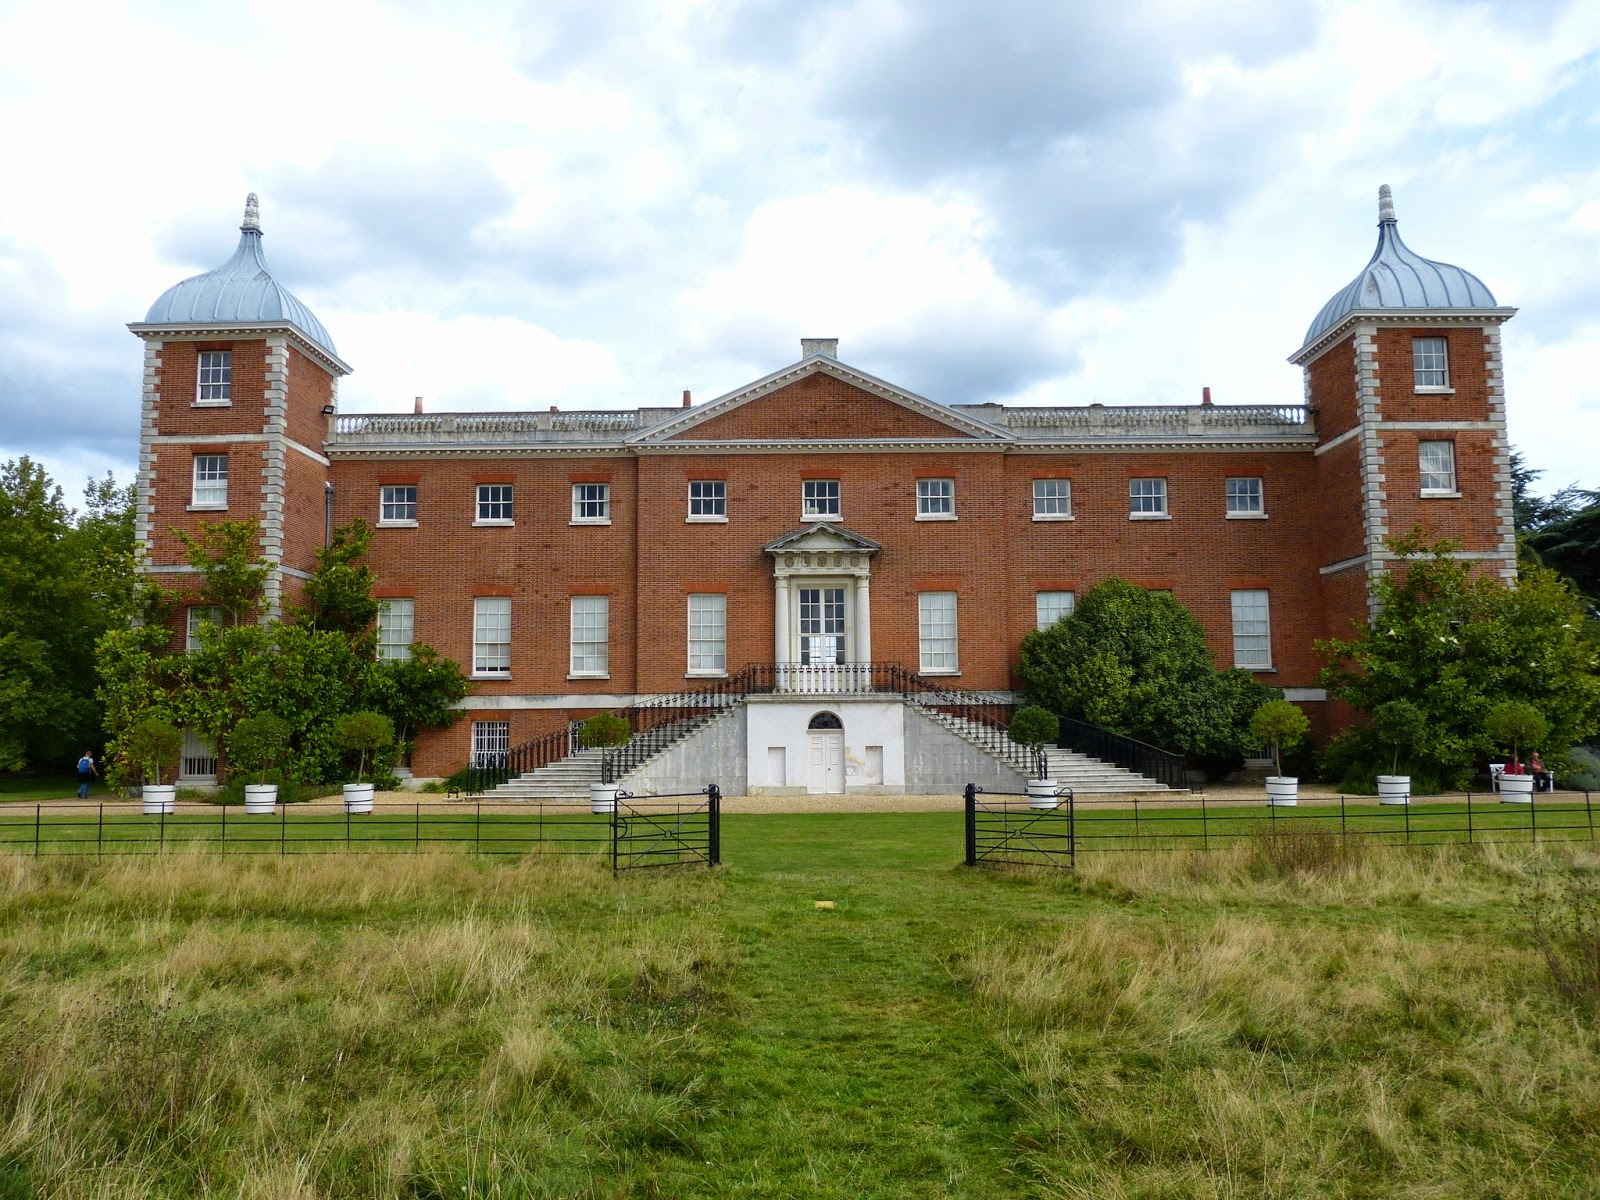 The rear view of the house, Osterley